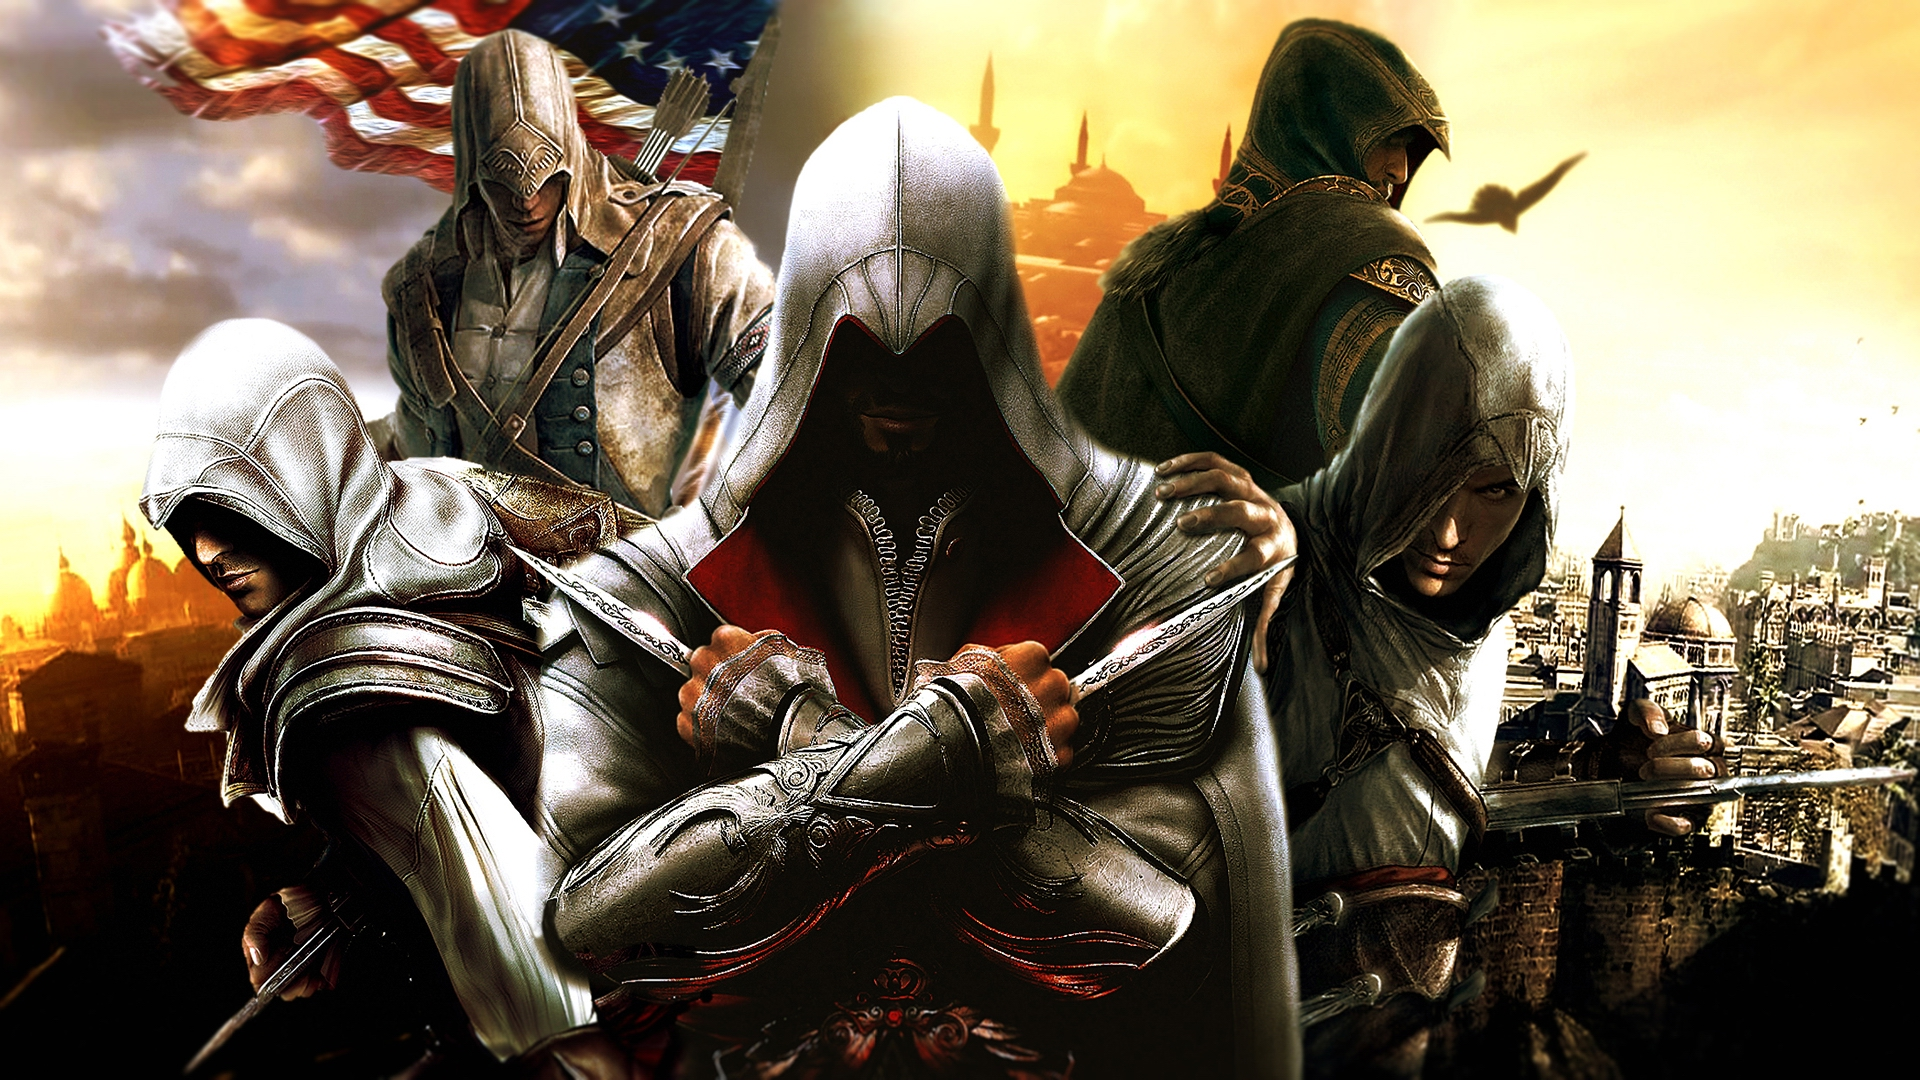 Free Download Assassins Creed Assassins Creed Wallpaper 30820342